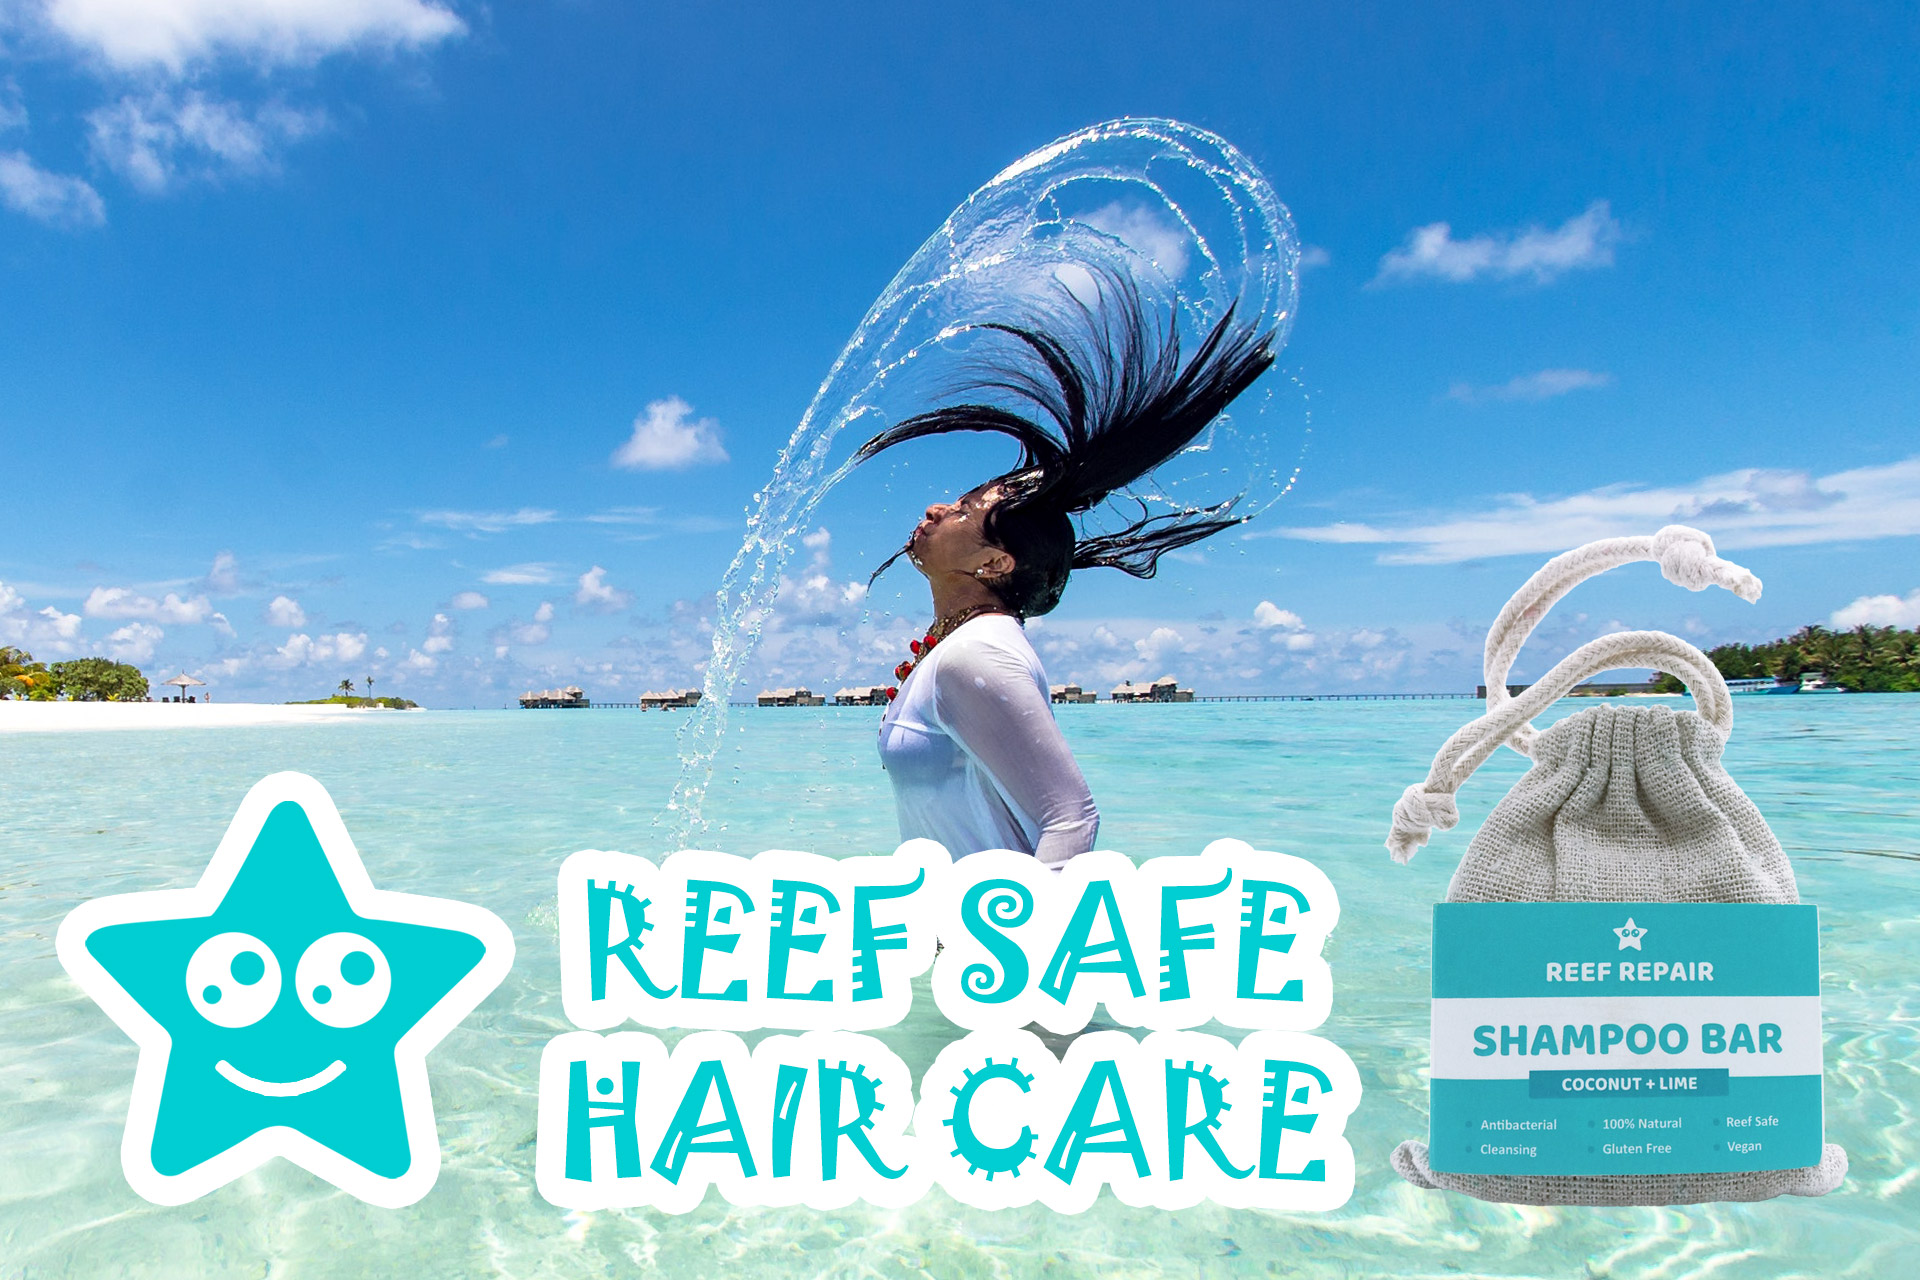 Reef Safe Hair Care Reef Repair Shampoo Bar Coconut Lime